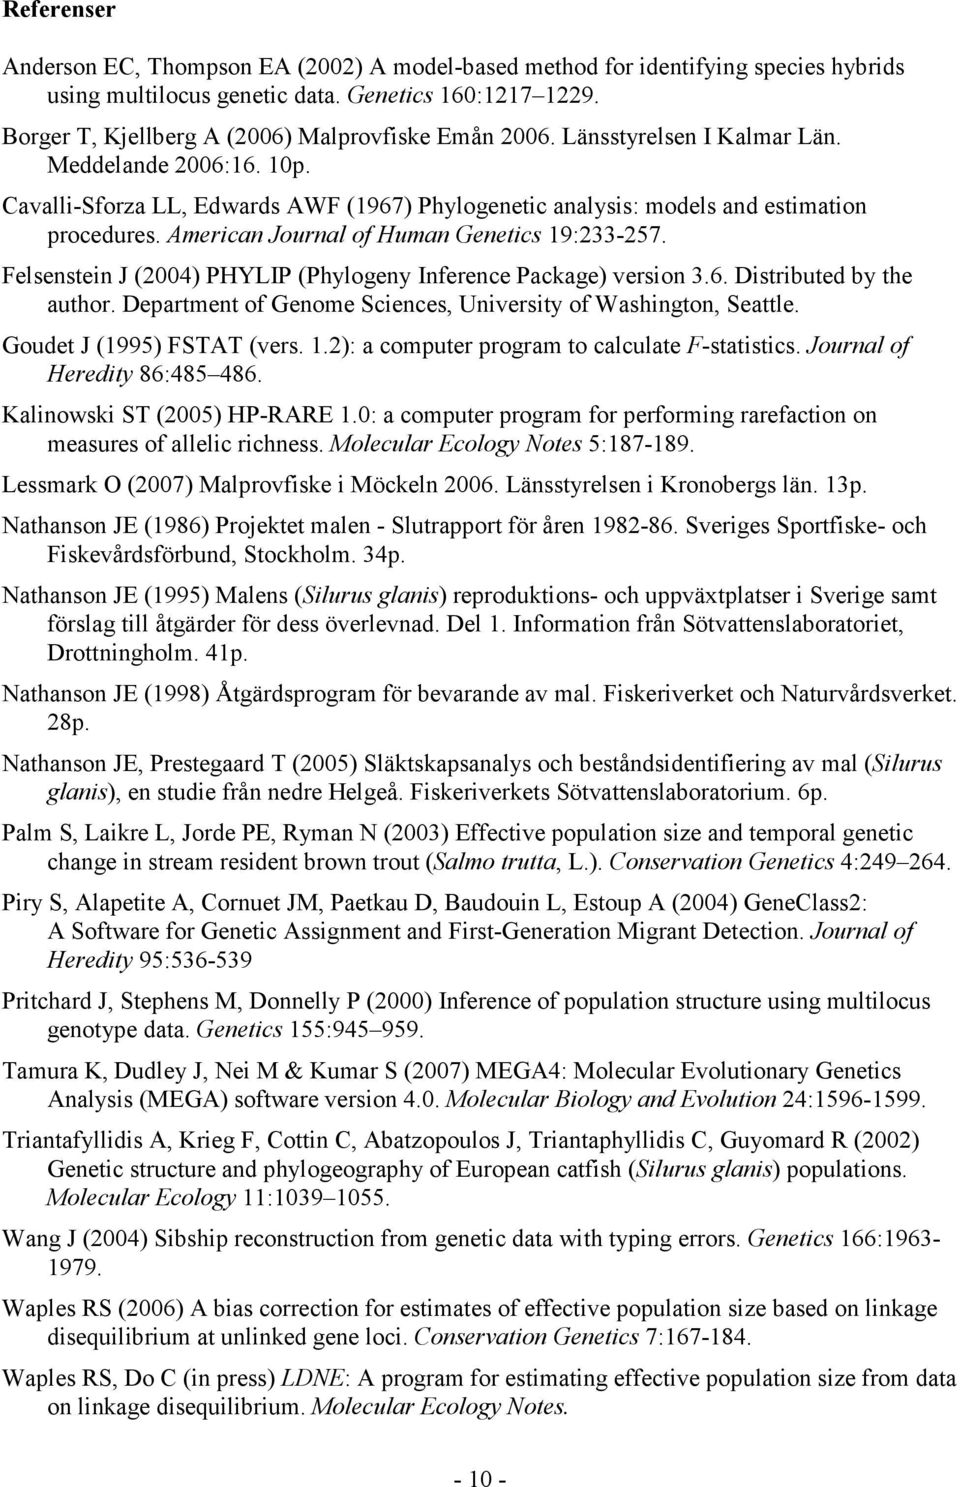 American Journal of Human Genetics 19:233-257. Felsenstein J (2004) PHYLIP (Phylogeny Inference Package) version 3.6. Distributed by the author.